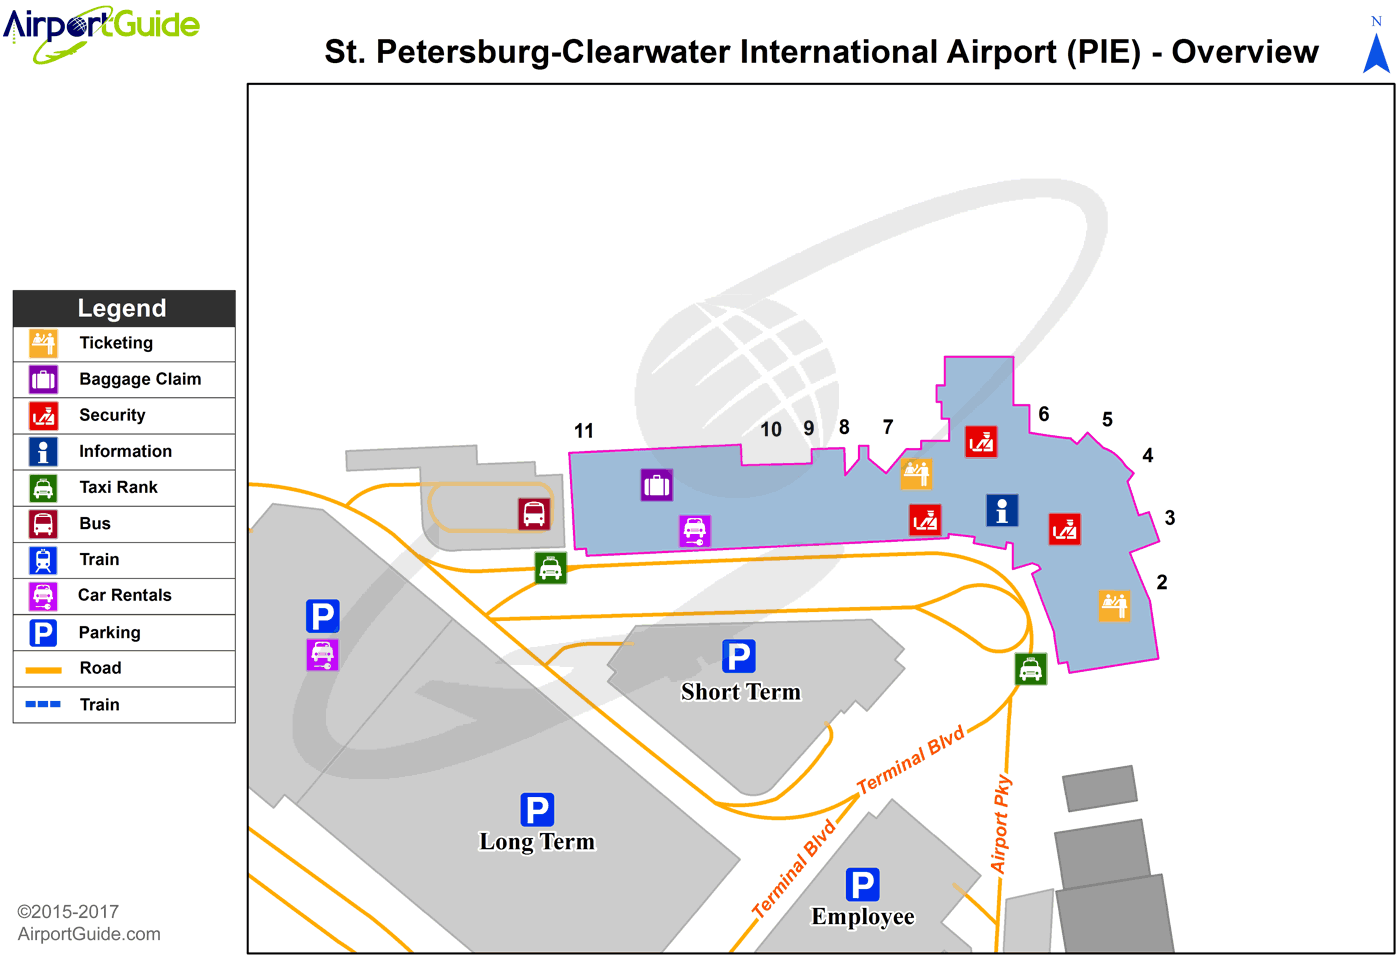 St Petersburg Clearwater St Pete Clearwater International Pie Airport Terminal Map Overview Clear Water Airport Guide Airport